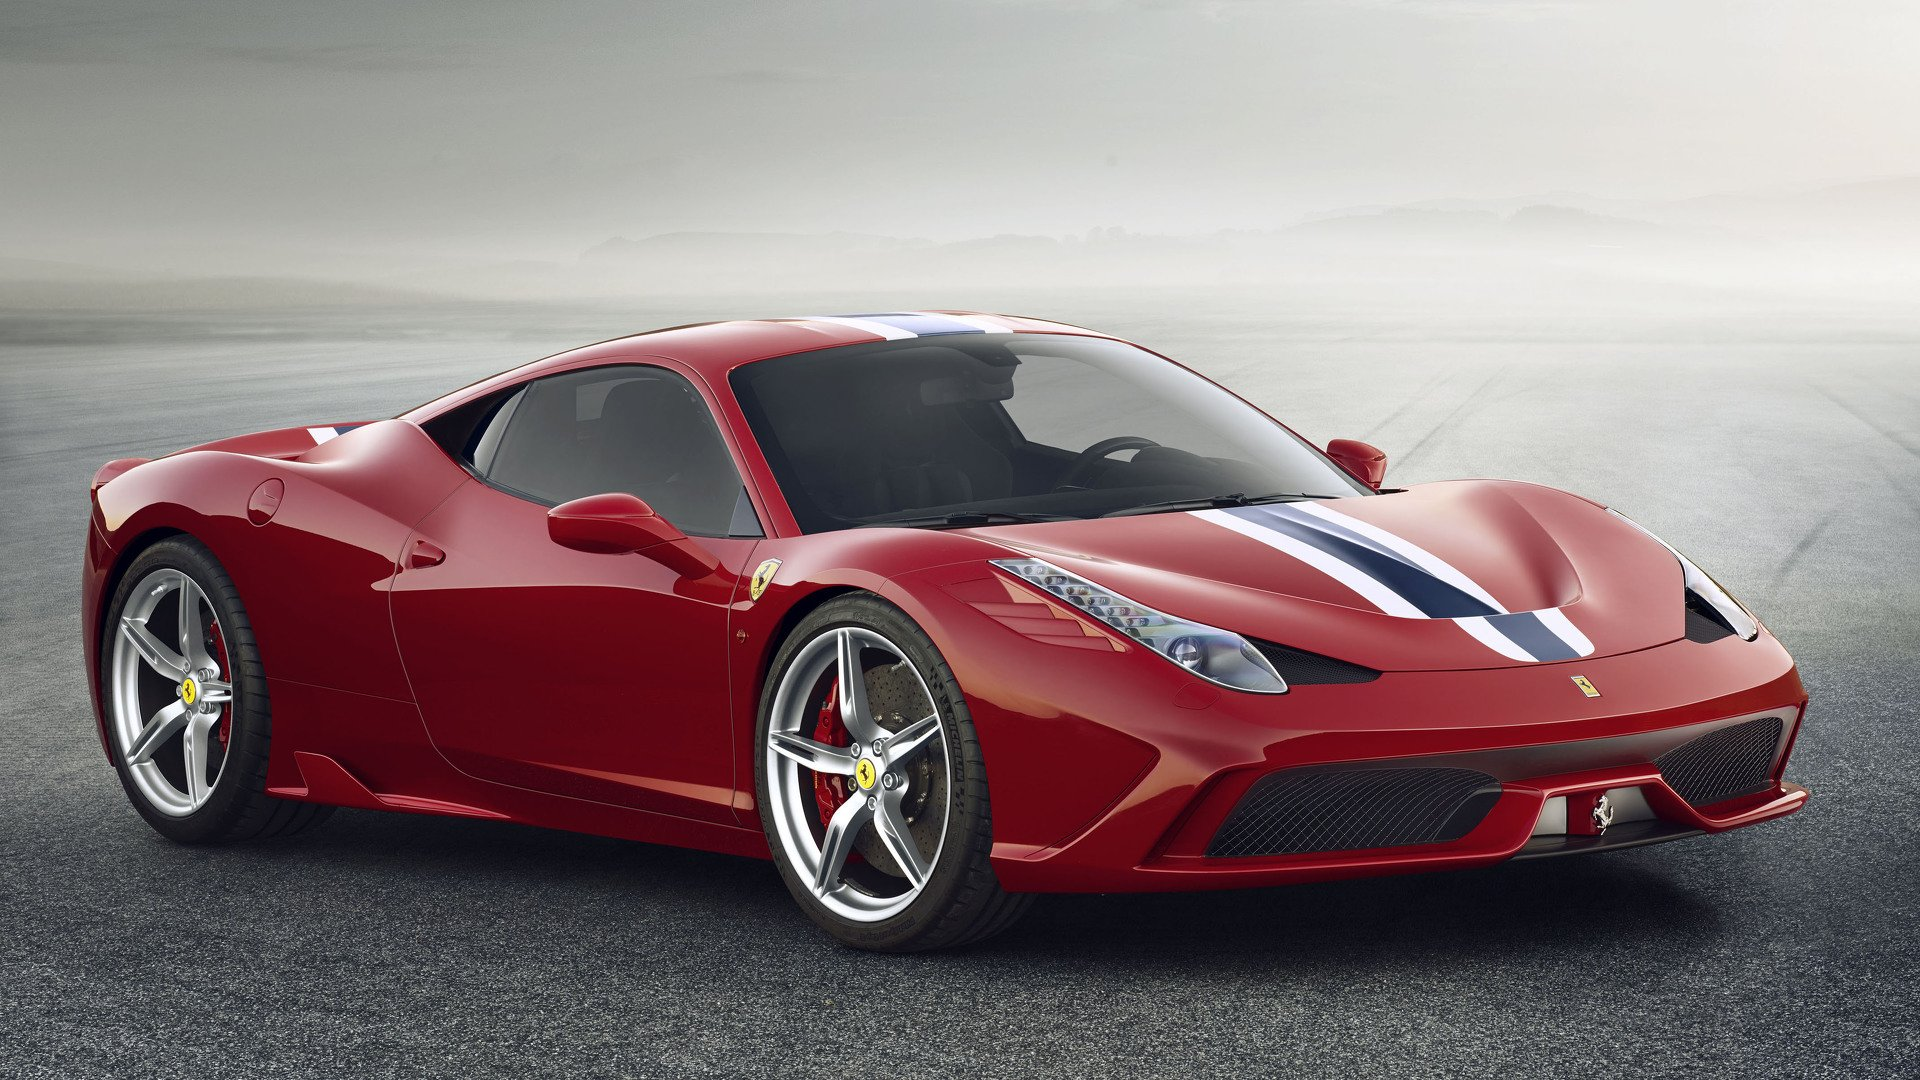 Ferrari 458 one of the most Instagram able or Insta-worthy cars among on social media